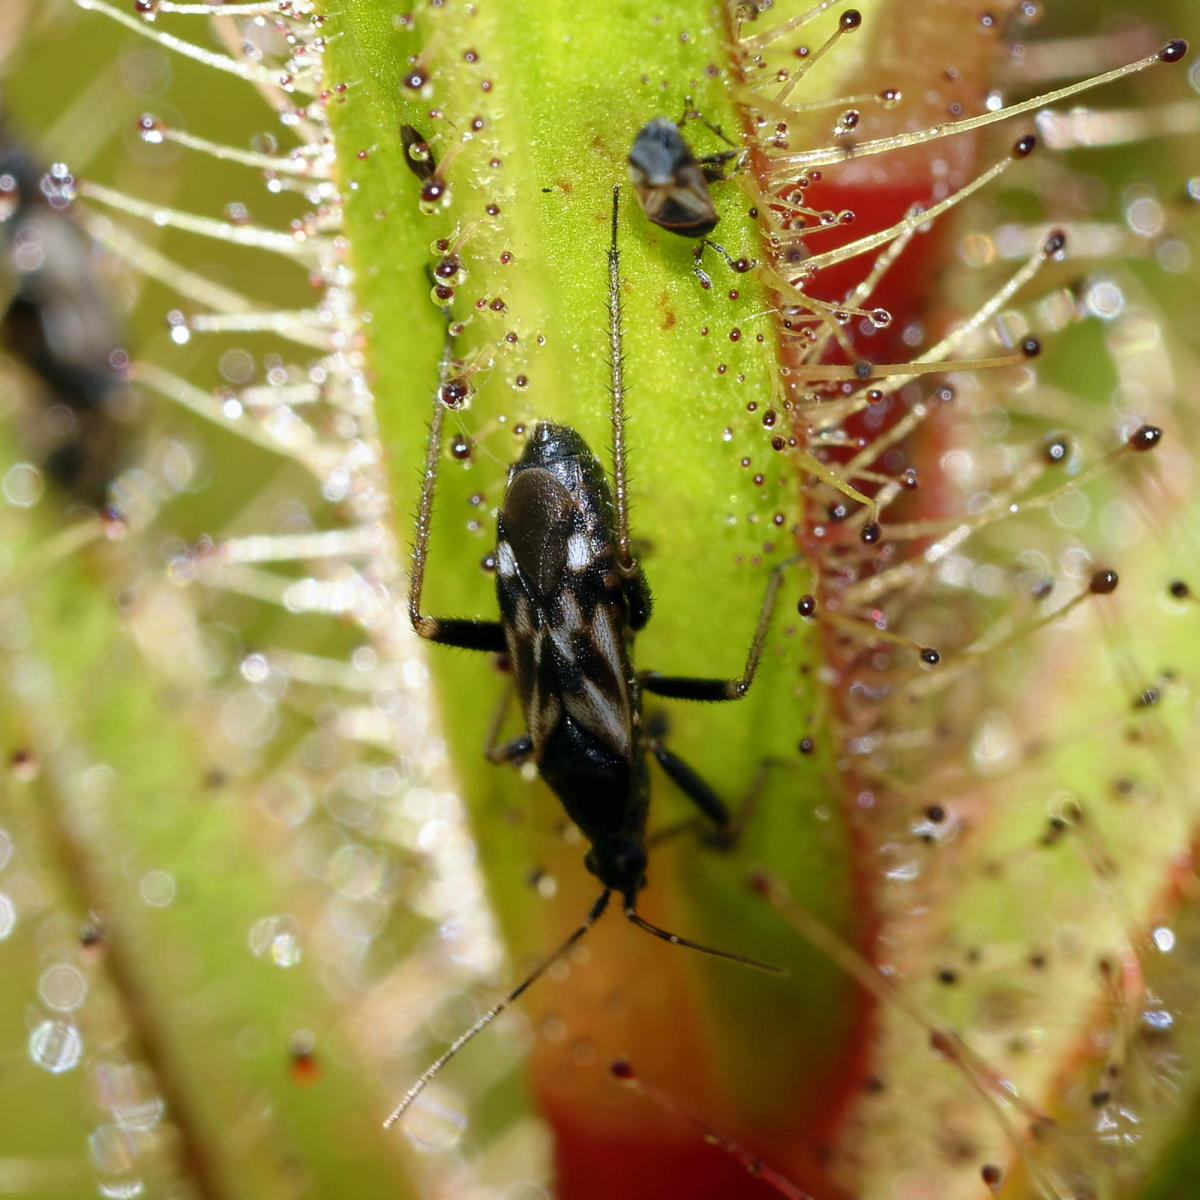 The dewy leaves of roridula provide captured insects for the assassin bug Pameridea